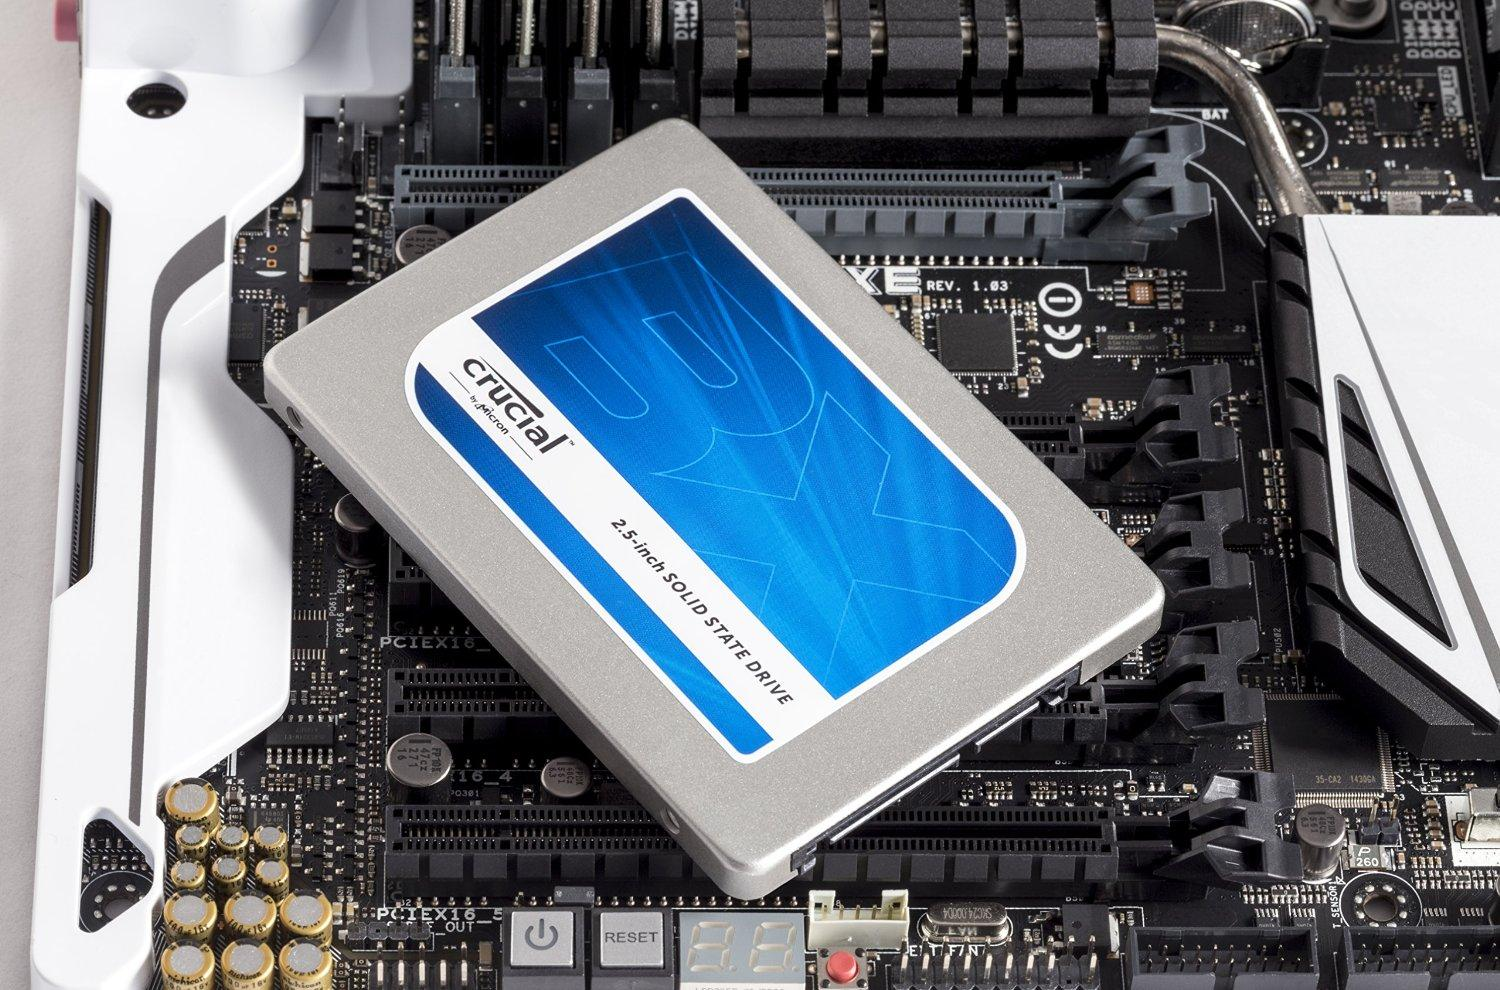 $65.99 Crucial BX100 250GB SATA 2.5 Inch Internal Solid State Drive